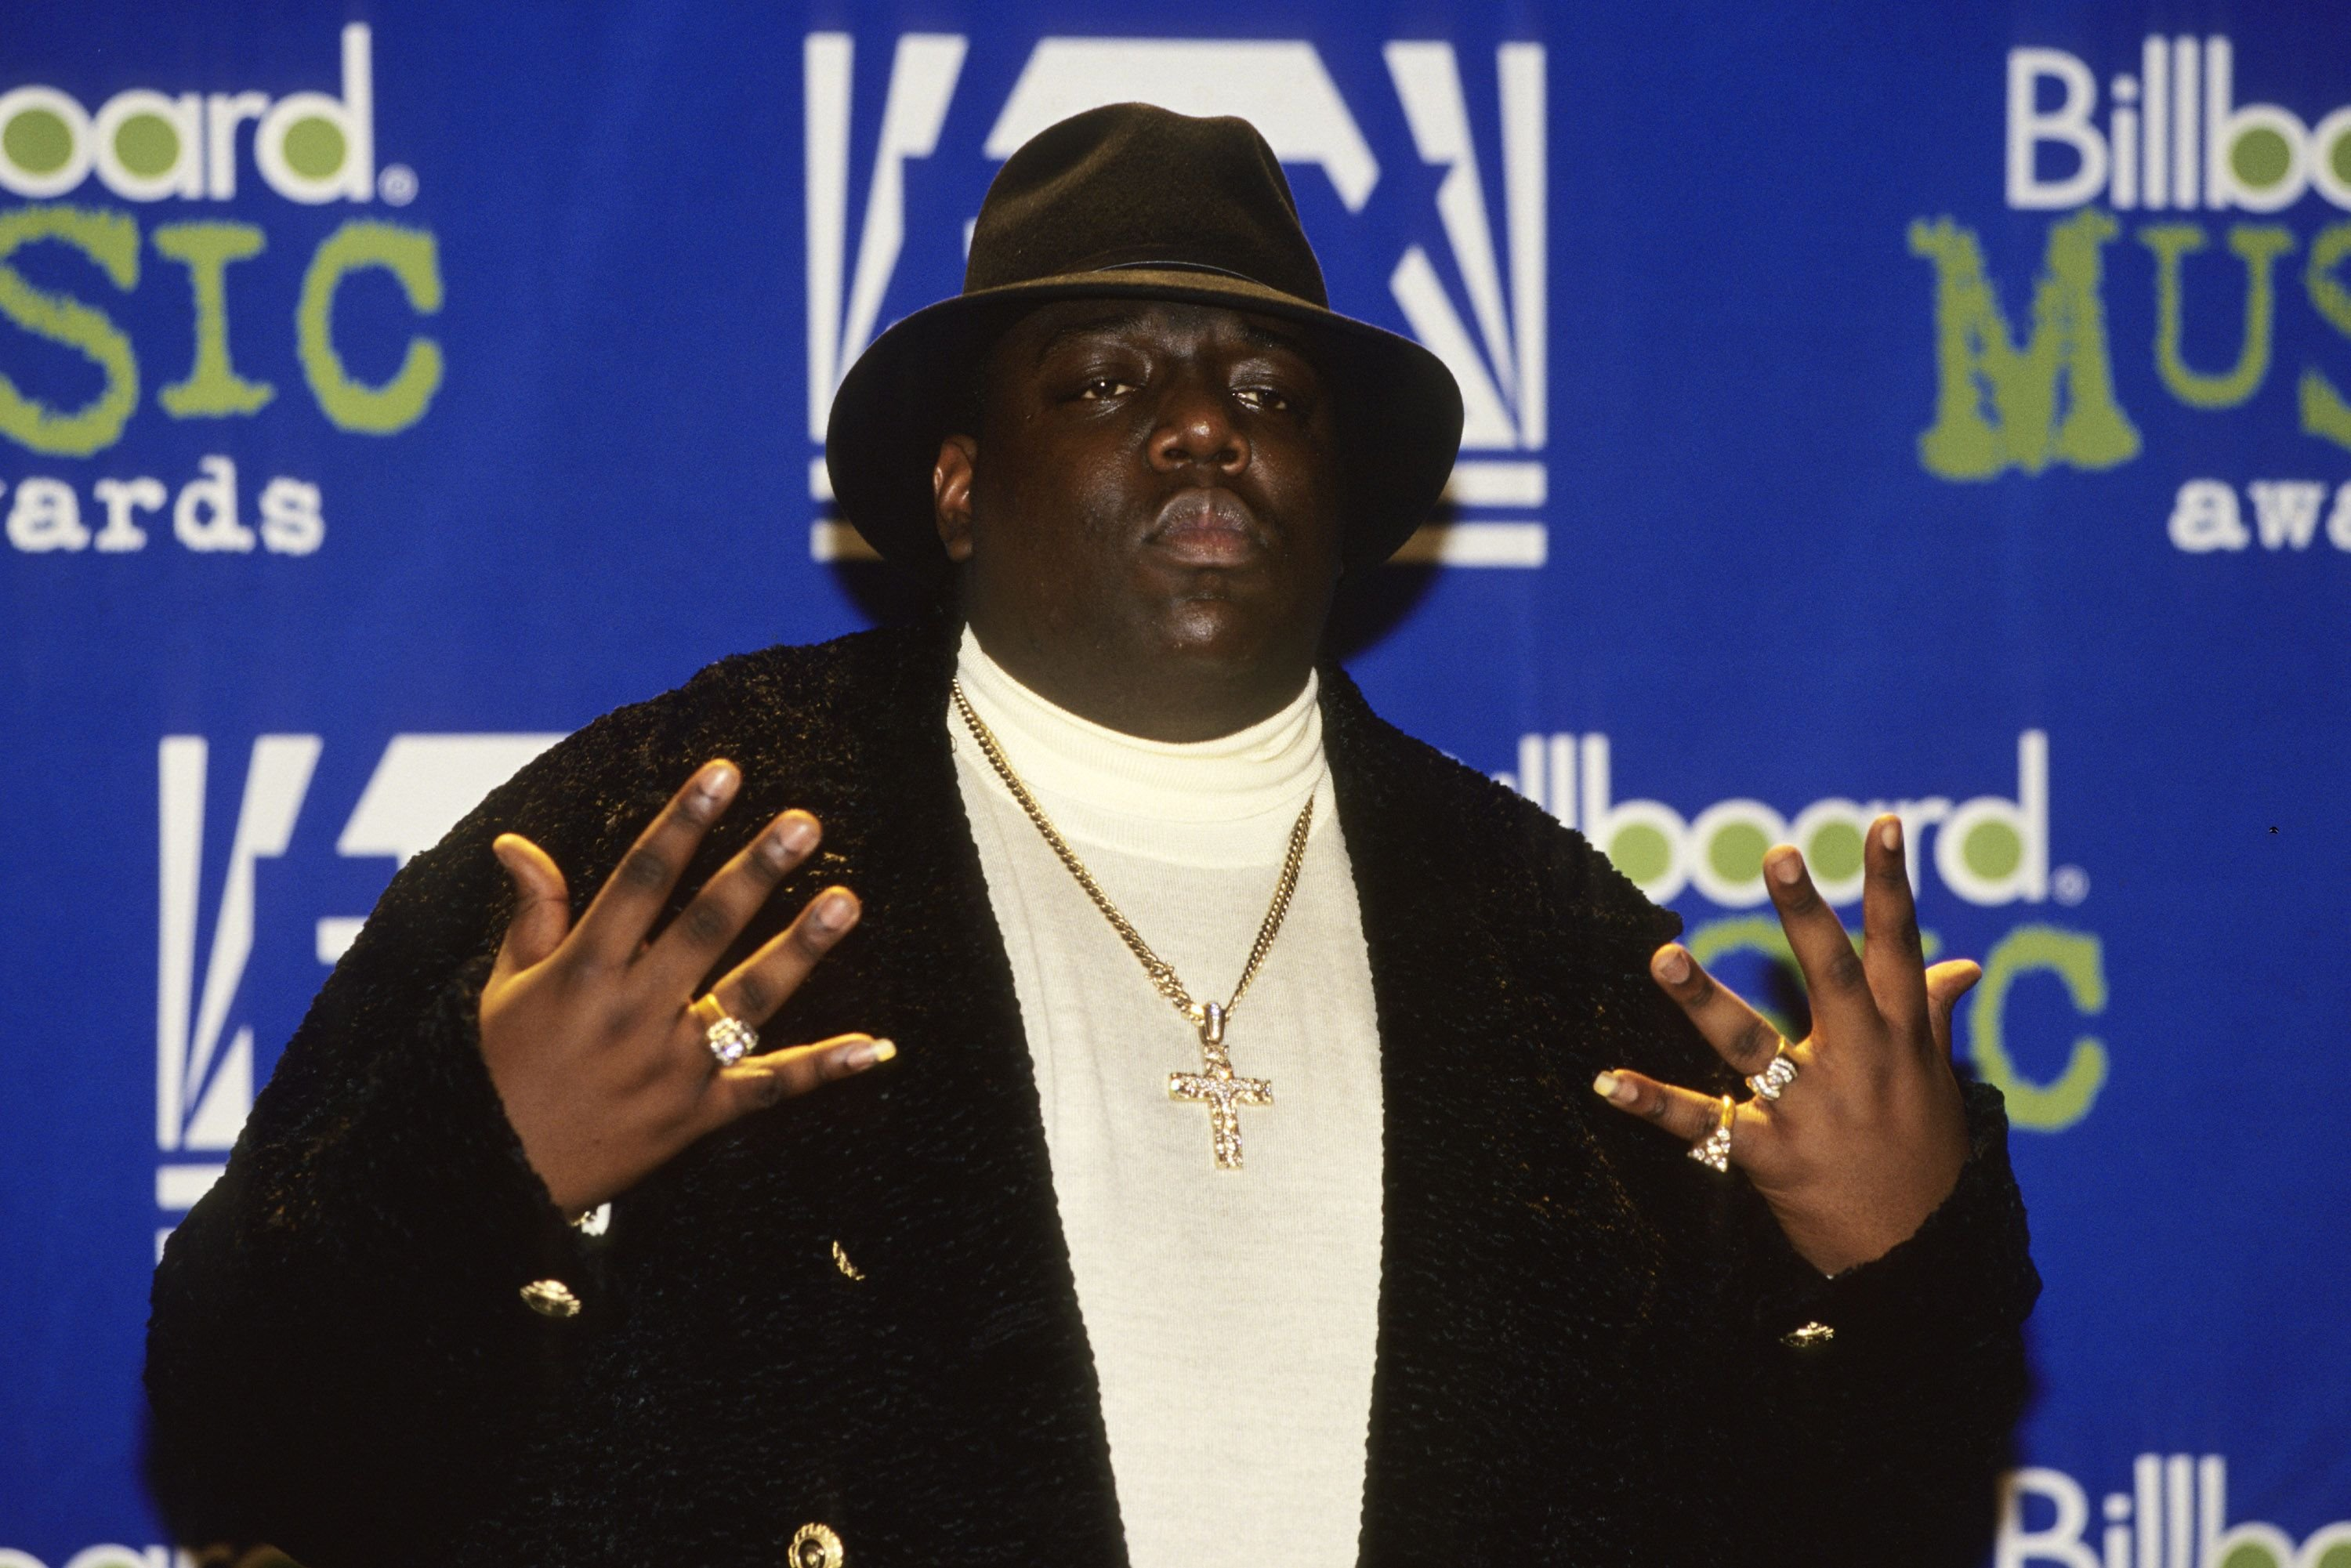 American rapper Notorious B.I.G. at the 1995 Billboard Music Awards in New York on December 6, 1996 | Photo: Getty Images